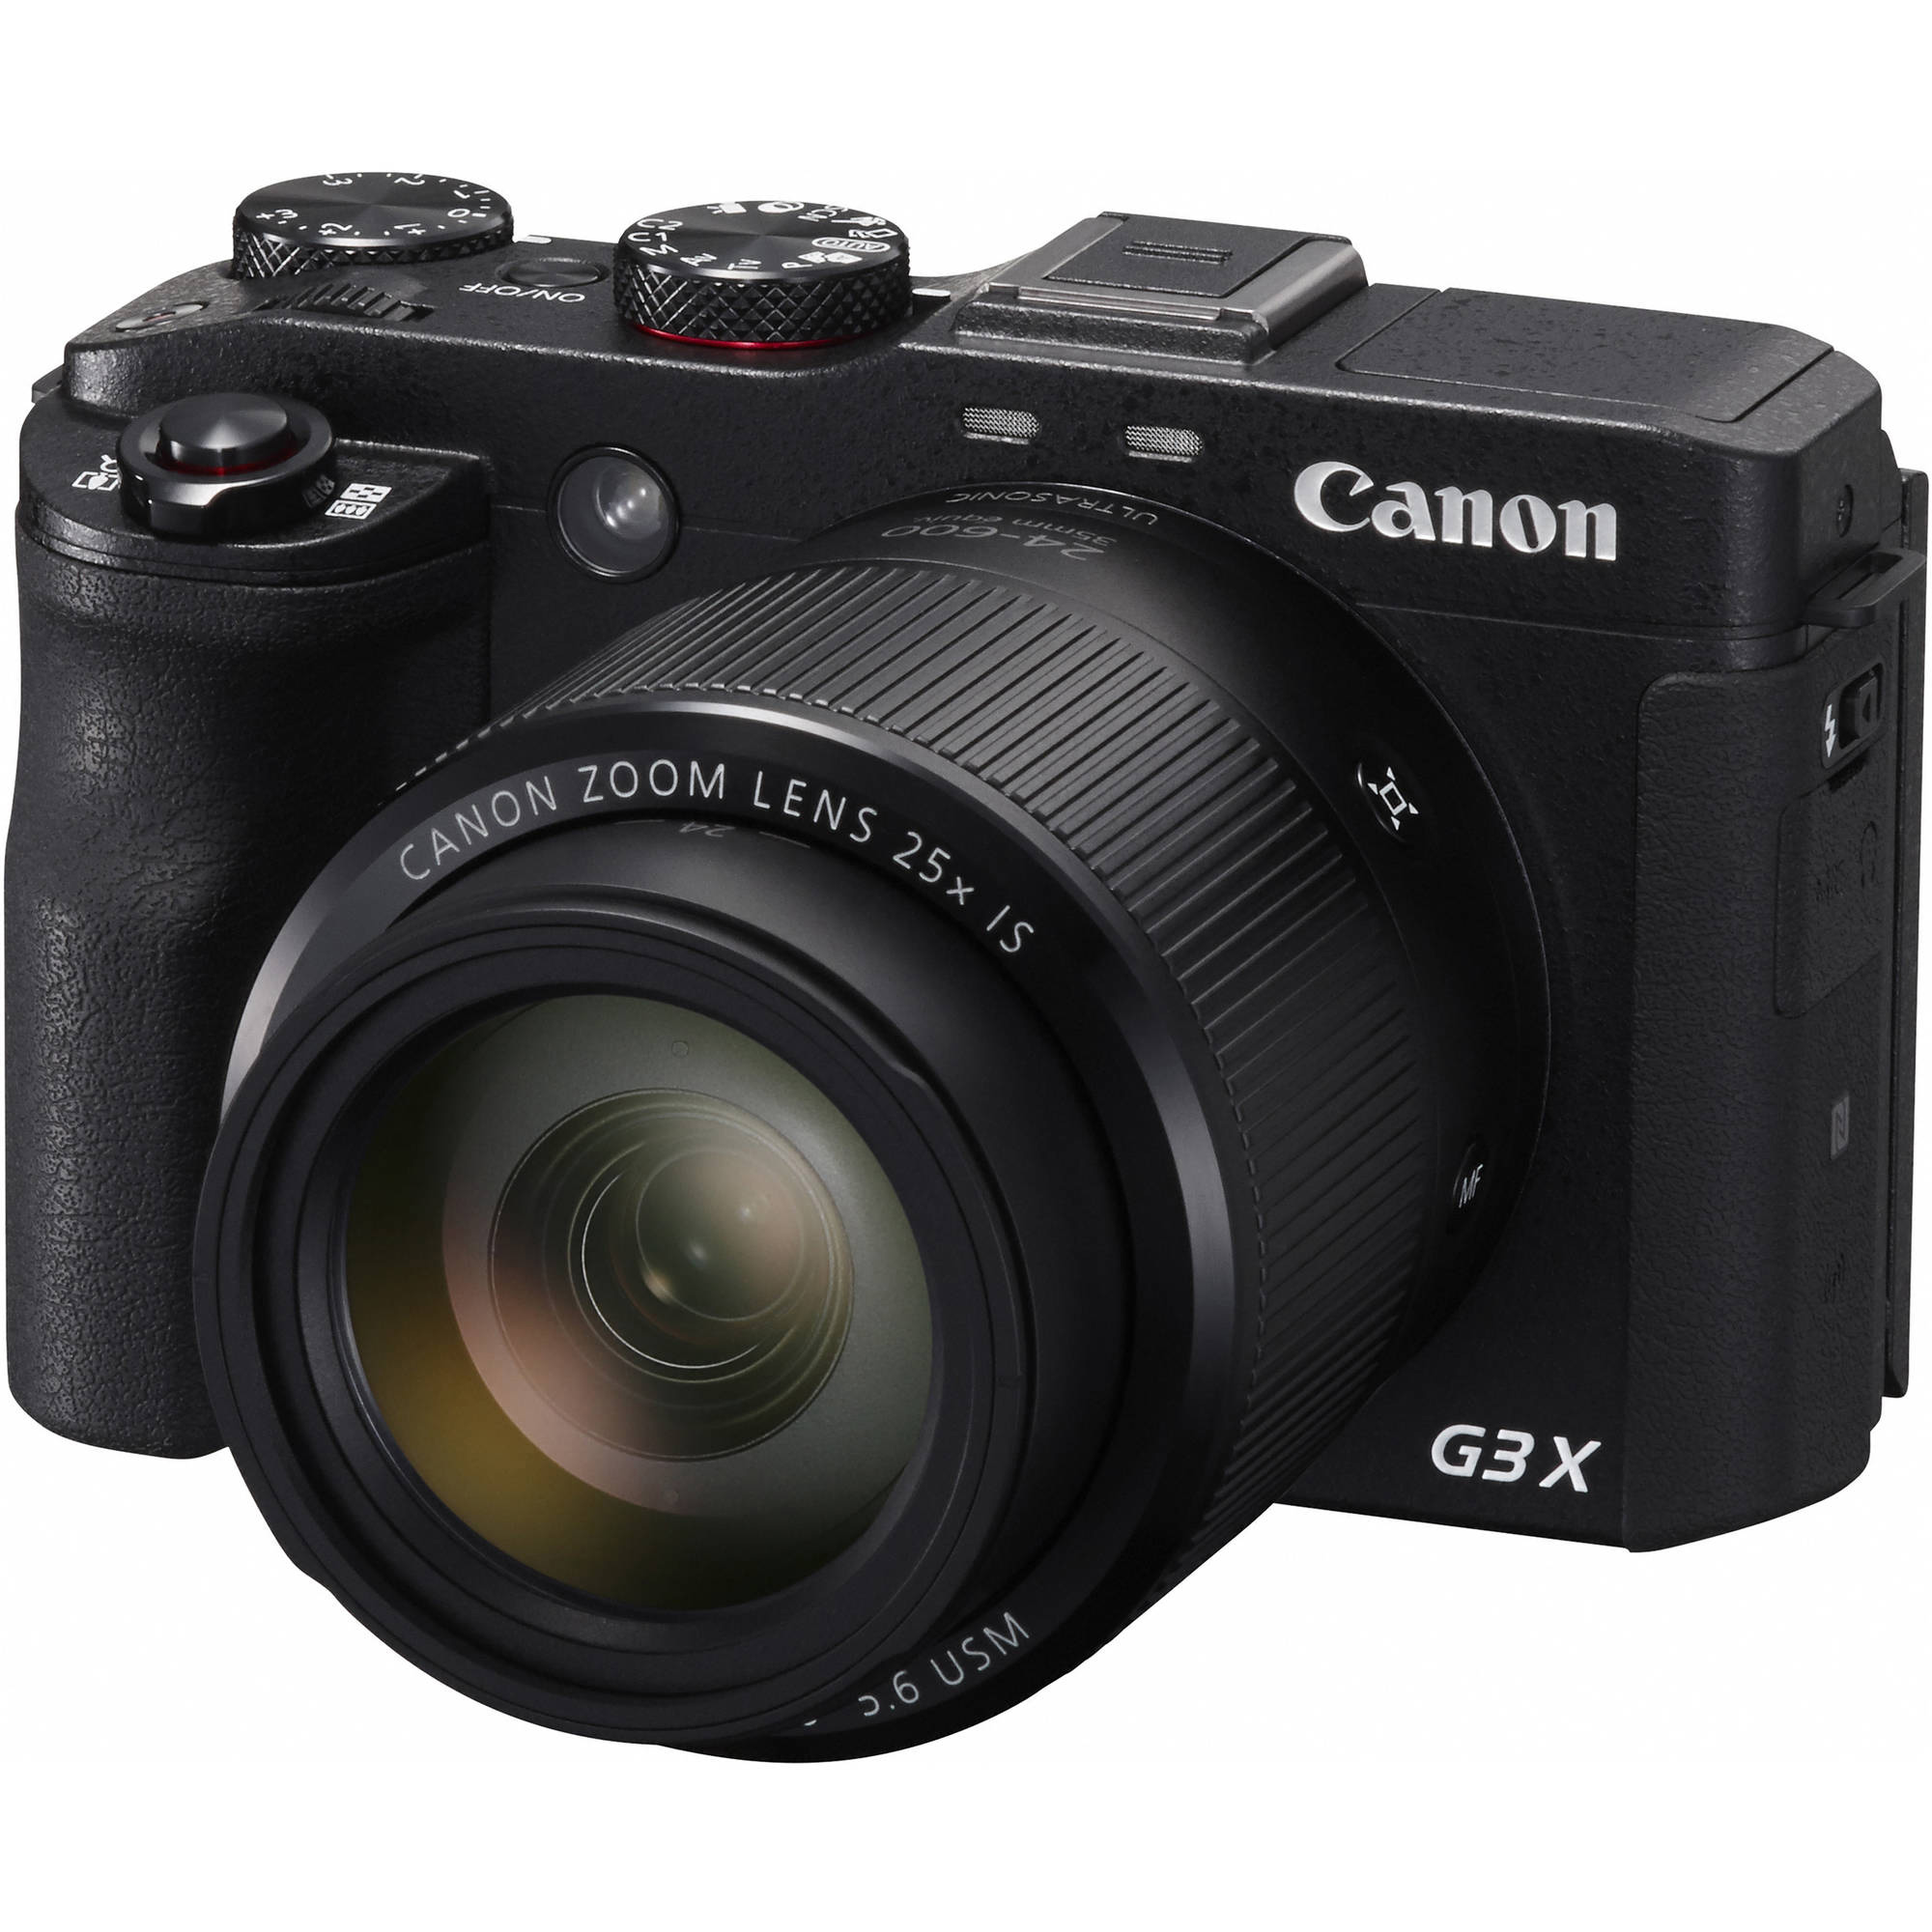 Canon PowerShot G3 X Wi-Fi Digital Camera by Canon